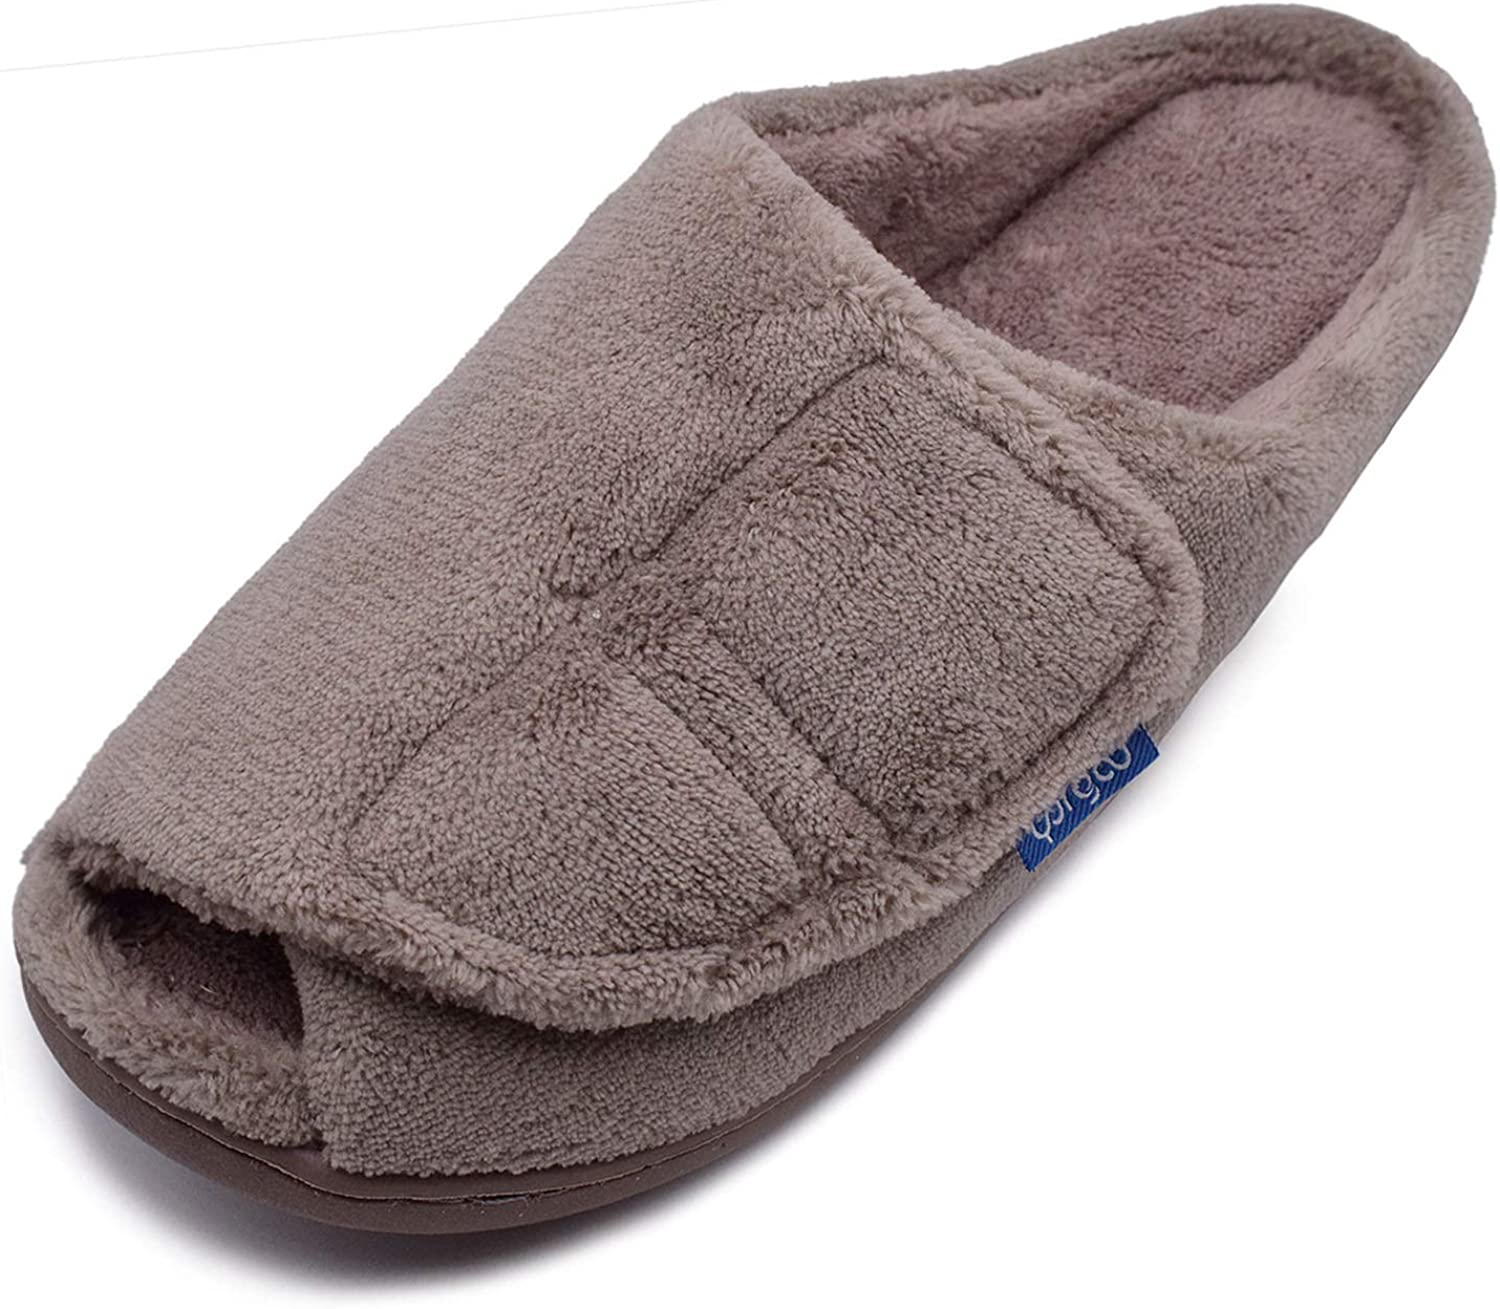 WLESVAGO Mens Wide Popularity House Selling and selling Slippers Adjustable Closure with Warm